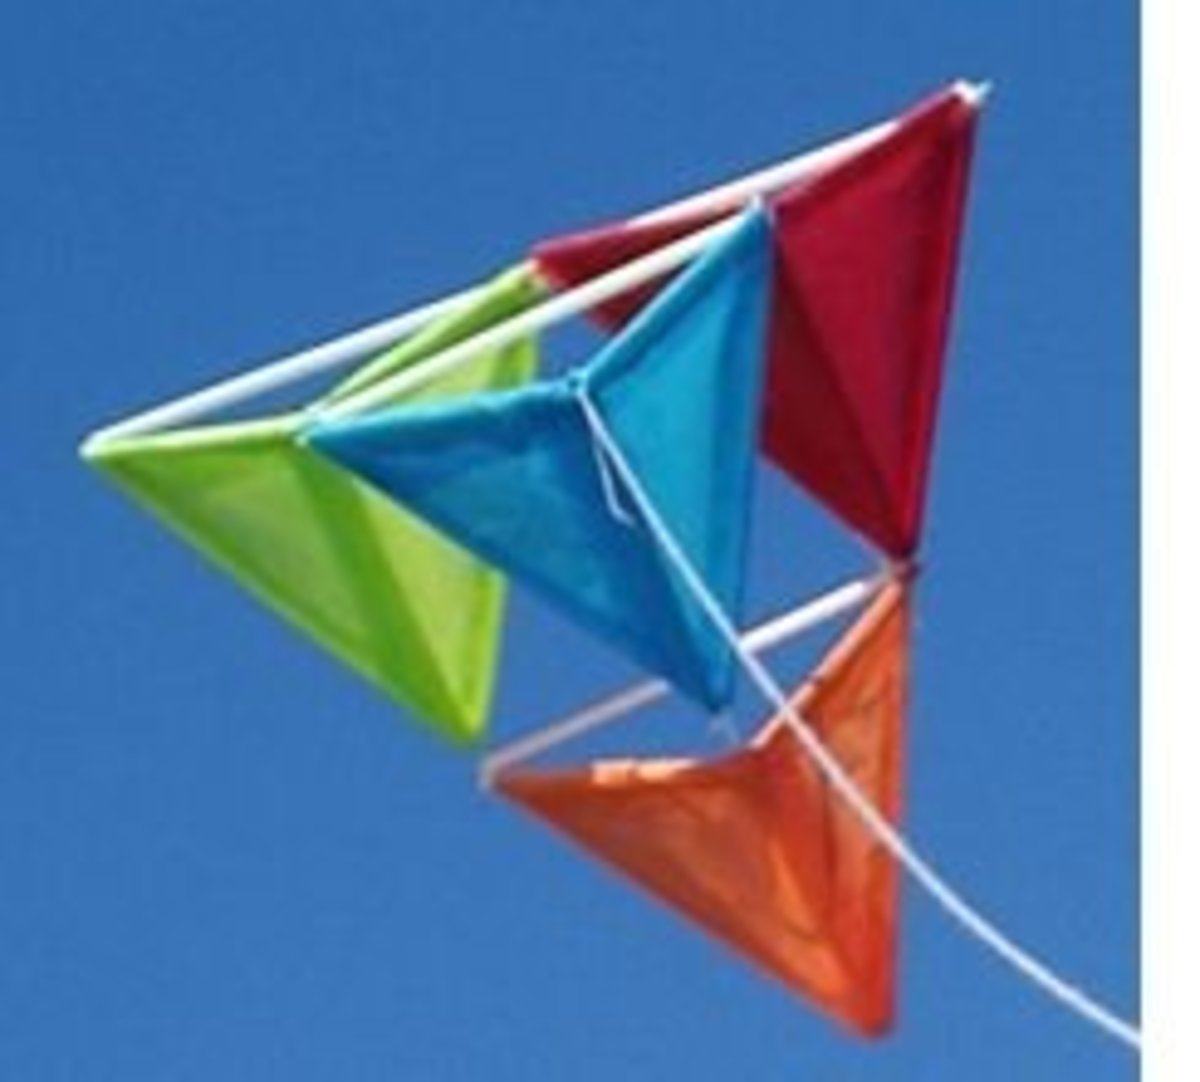 Easy Kitemaking: How to Build a Pyramid Kite